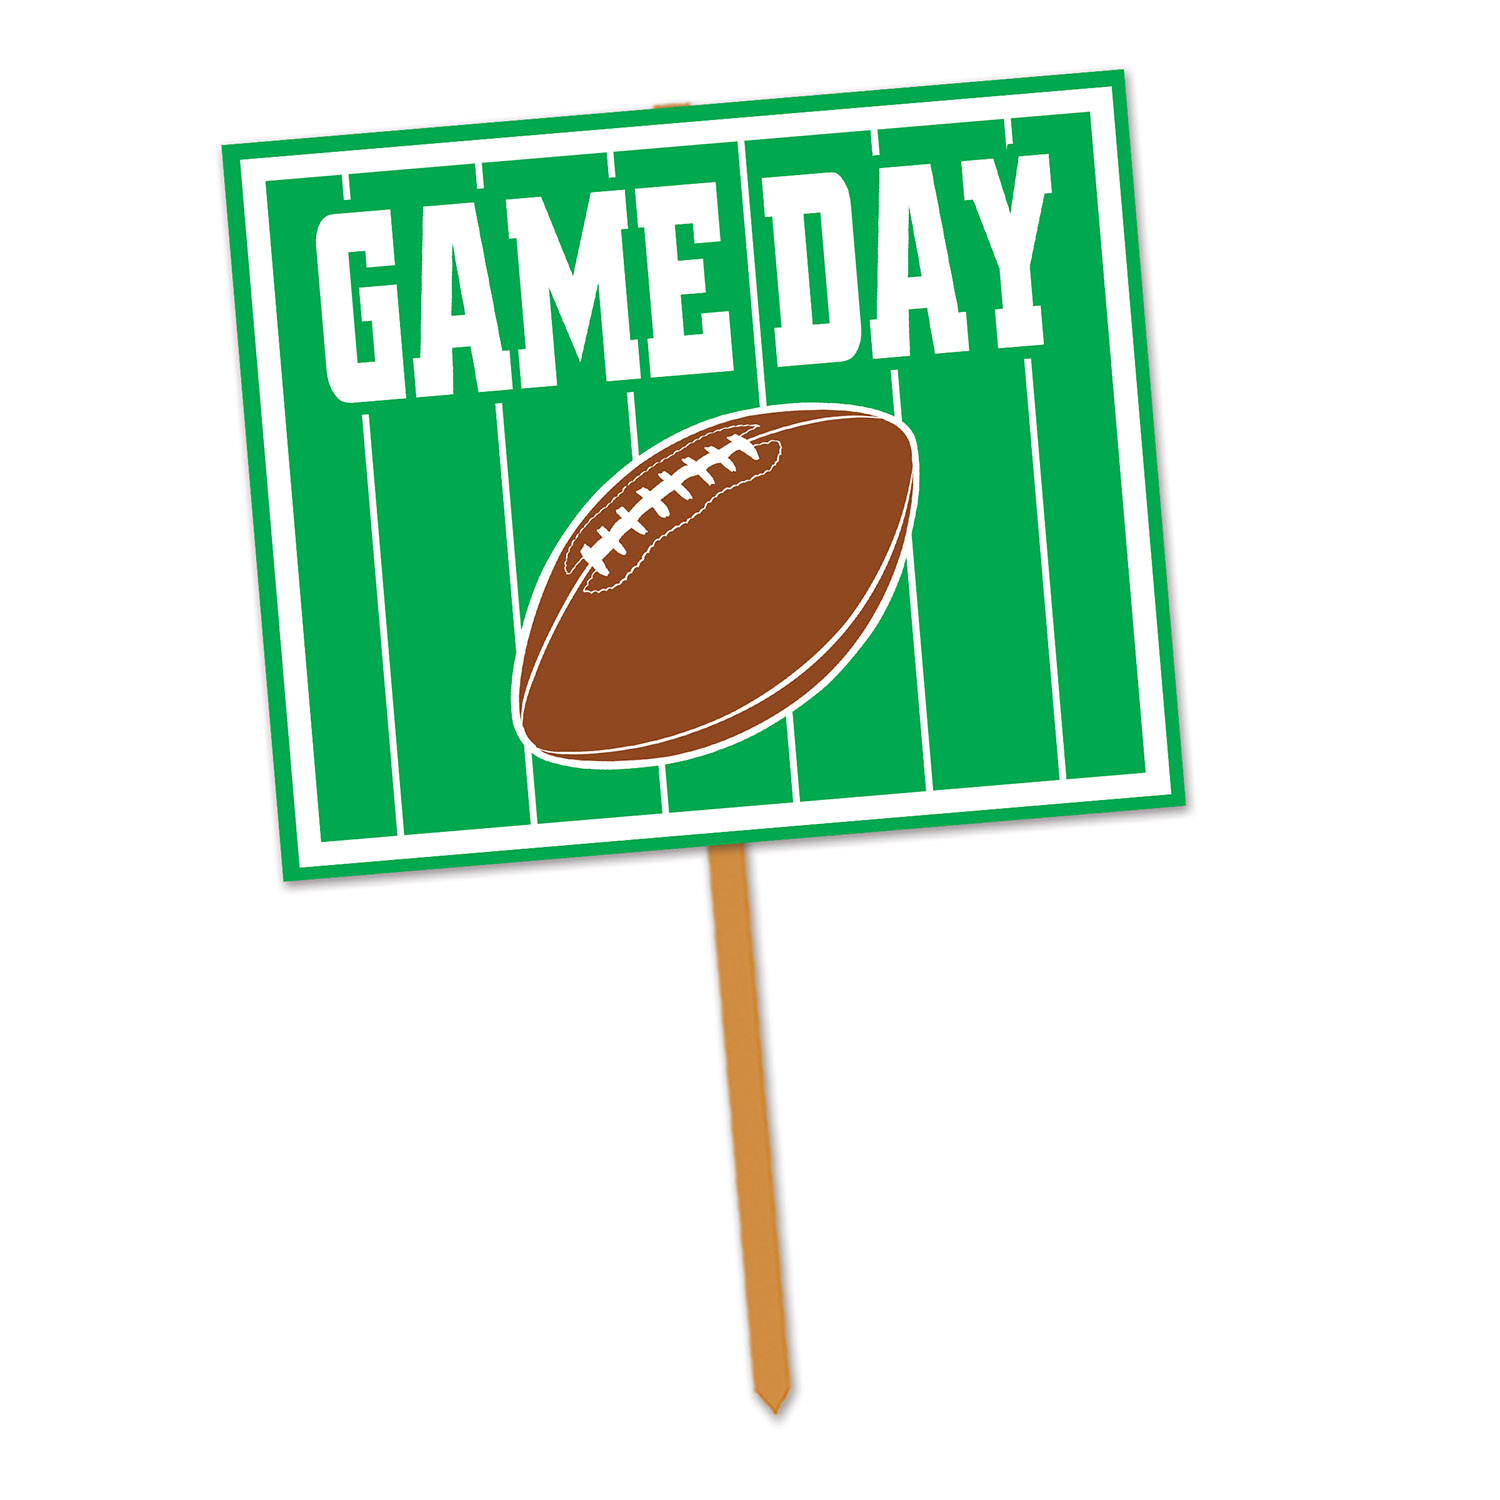 Game Day Yard Sign (Pack of 6) games, sports, yard sign, sign, yard, football, competition, big game, game day